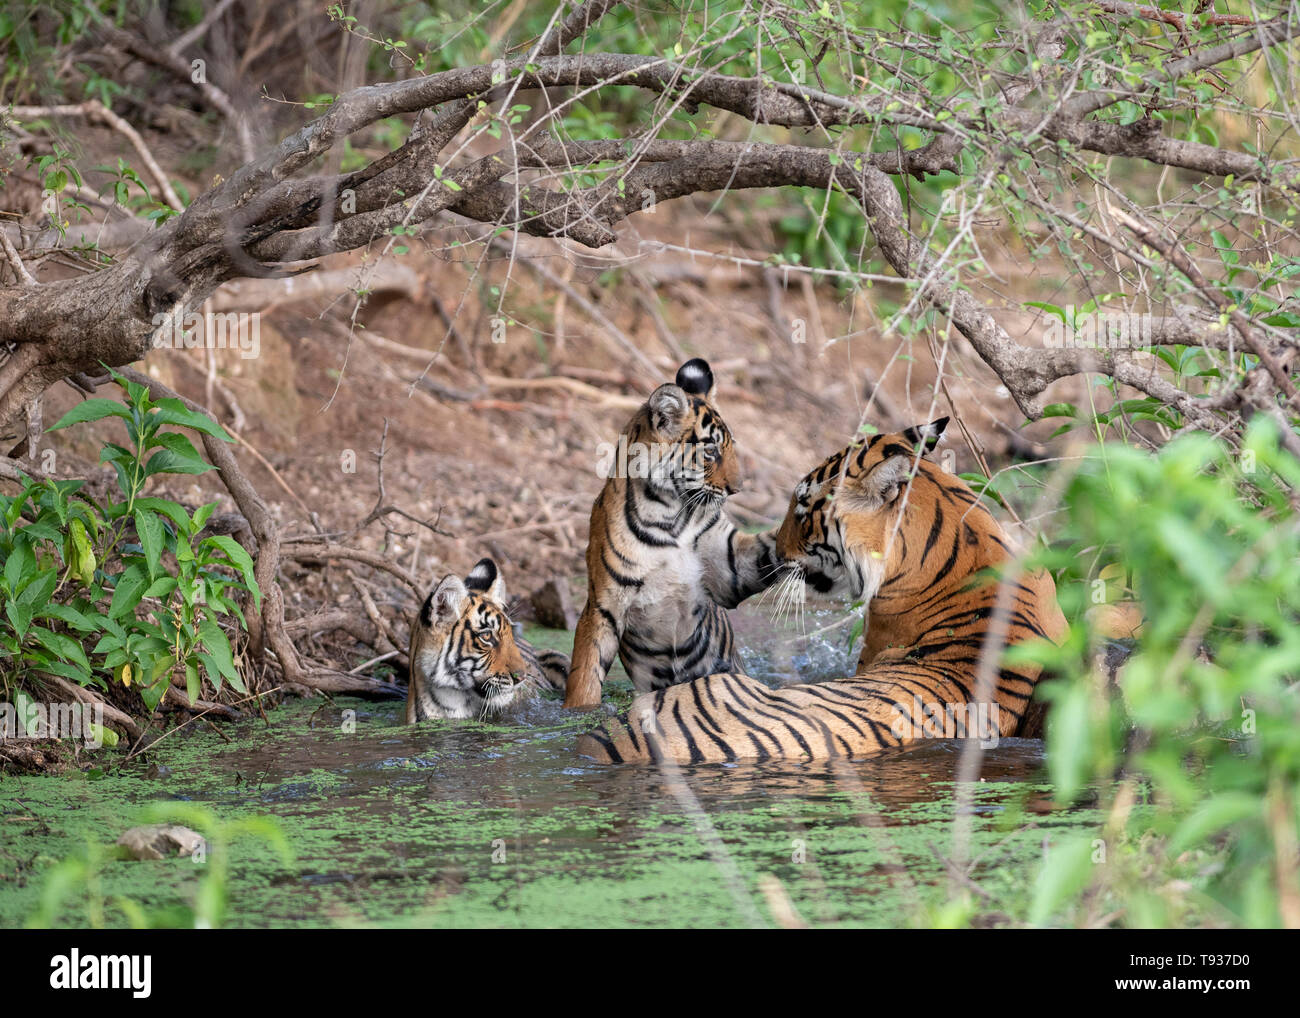 Tigress T-84 Arrowhead with her six month old cubs in the water together - Stock Image